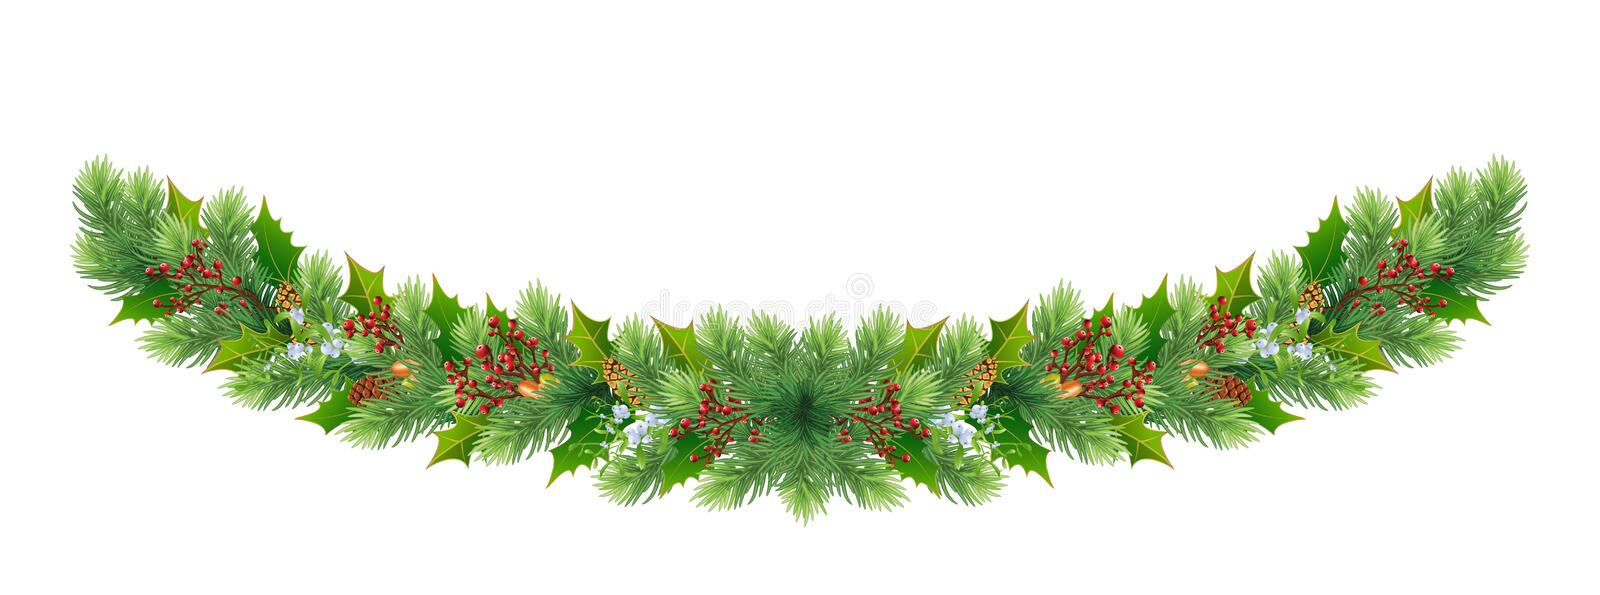 Christmas and Happy New Year border/wreath/garland with fir-tree tree branches and red berries, cones, acorns, mistletoe. Christmas and New Year decorations for stock illustration